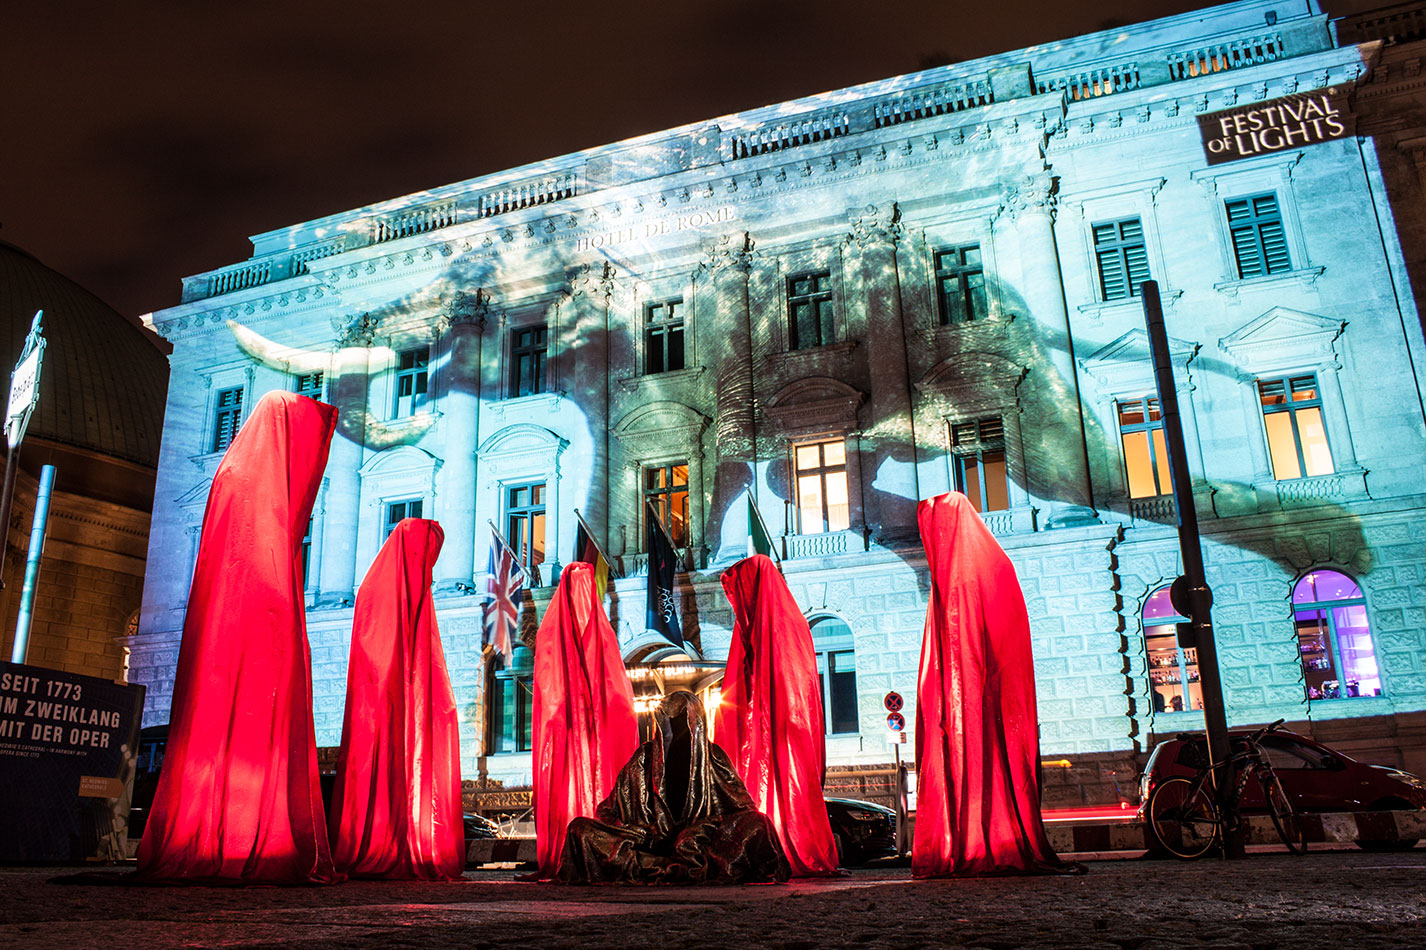 festival-of-lights-berlin-hotel-de-rome-light-art-show-exhibition-lumina-guardians-of-time-manfred-kili-kielnhofer-contemporary-arts-design-sculpture-3381